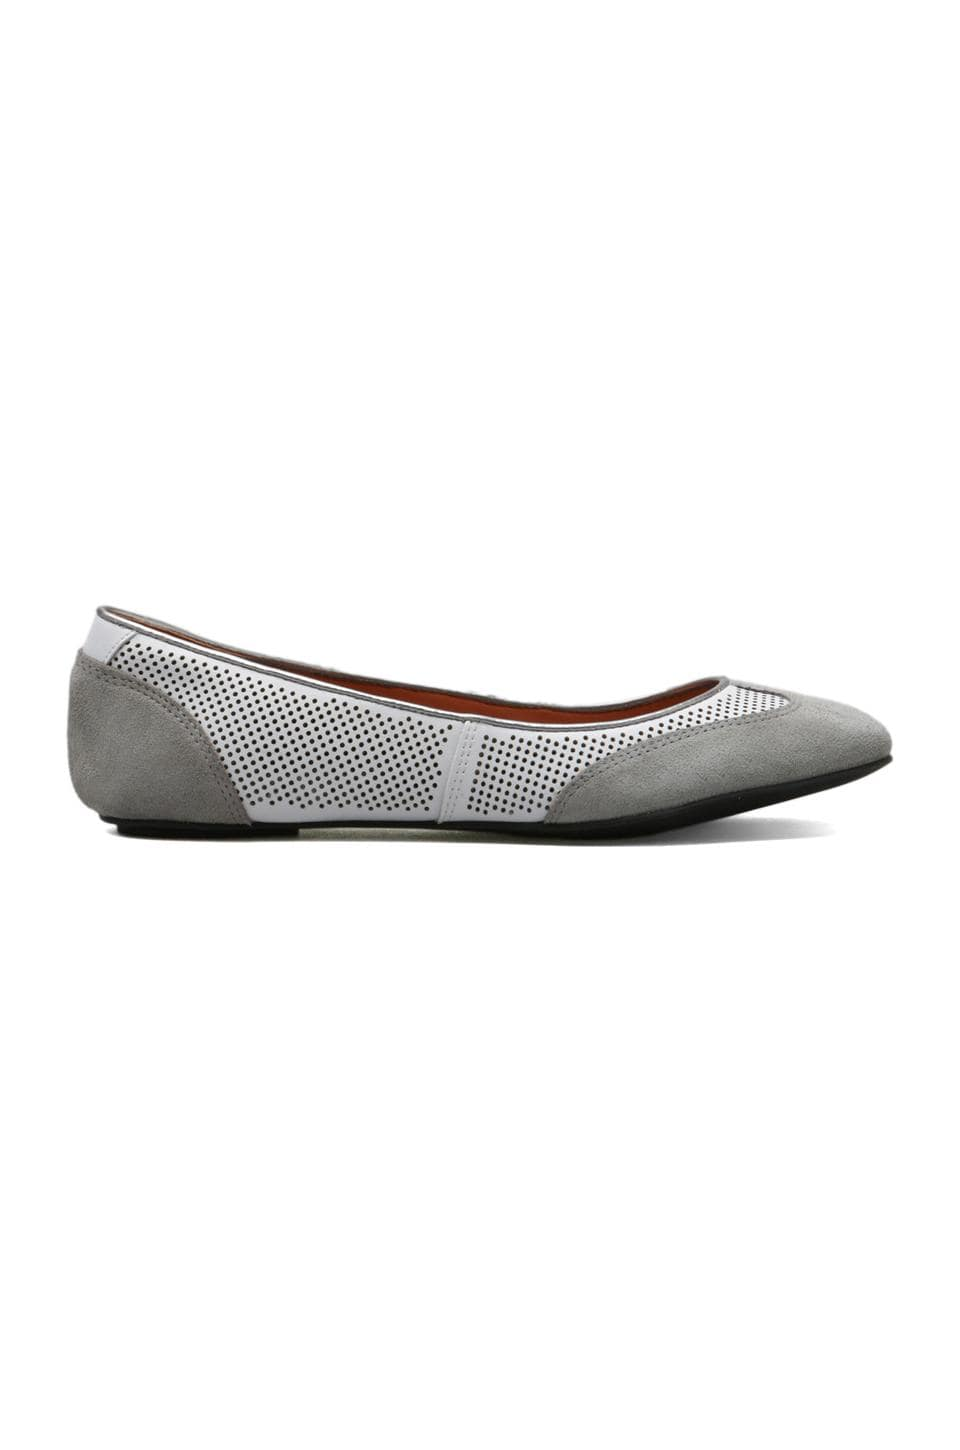 Luxury Rebel Benin Flat in Cement/White